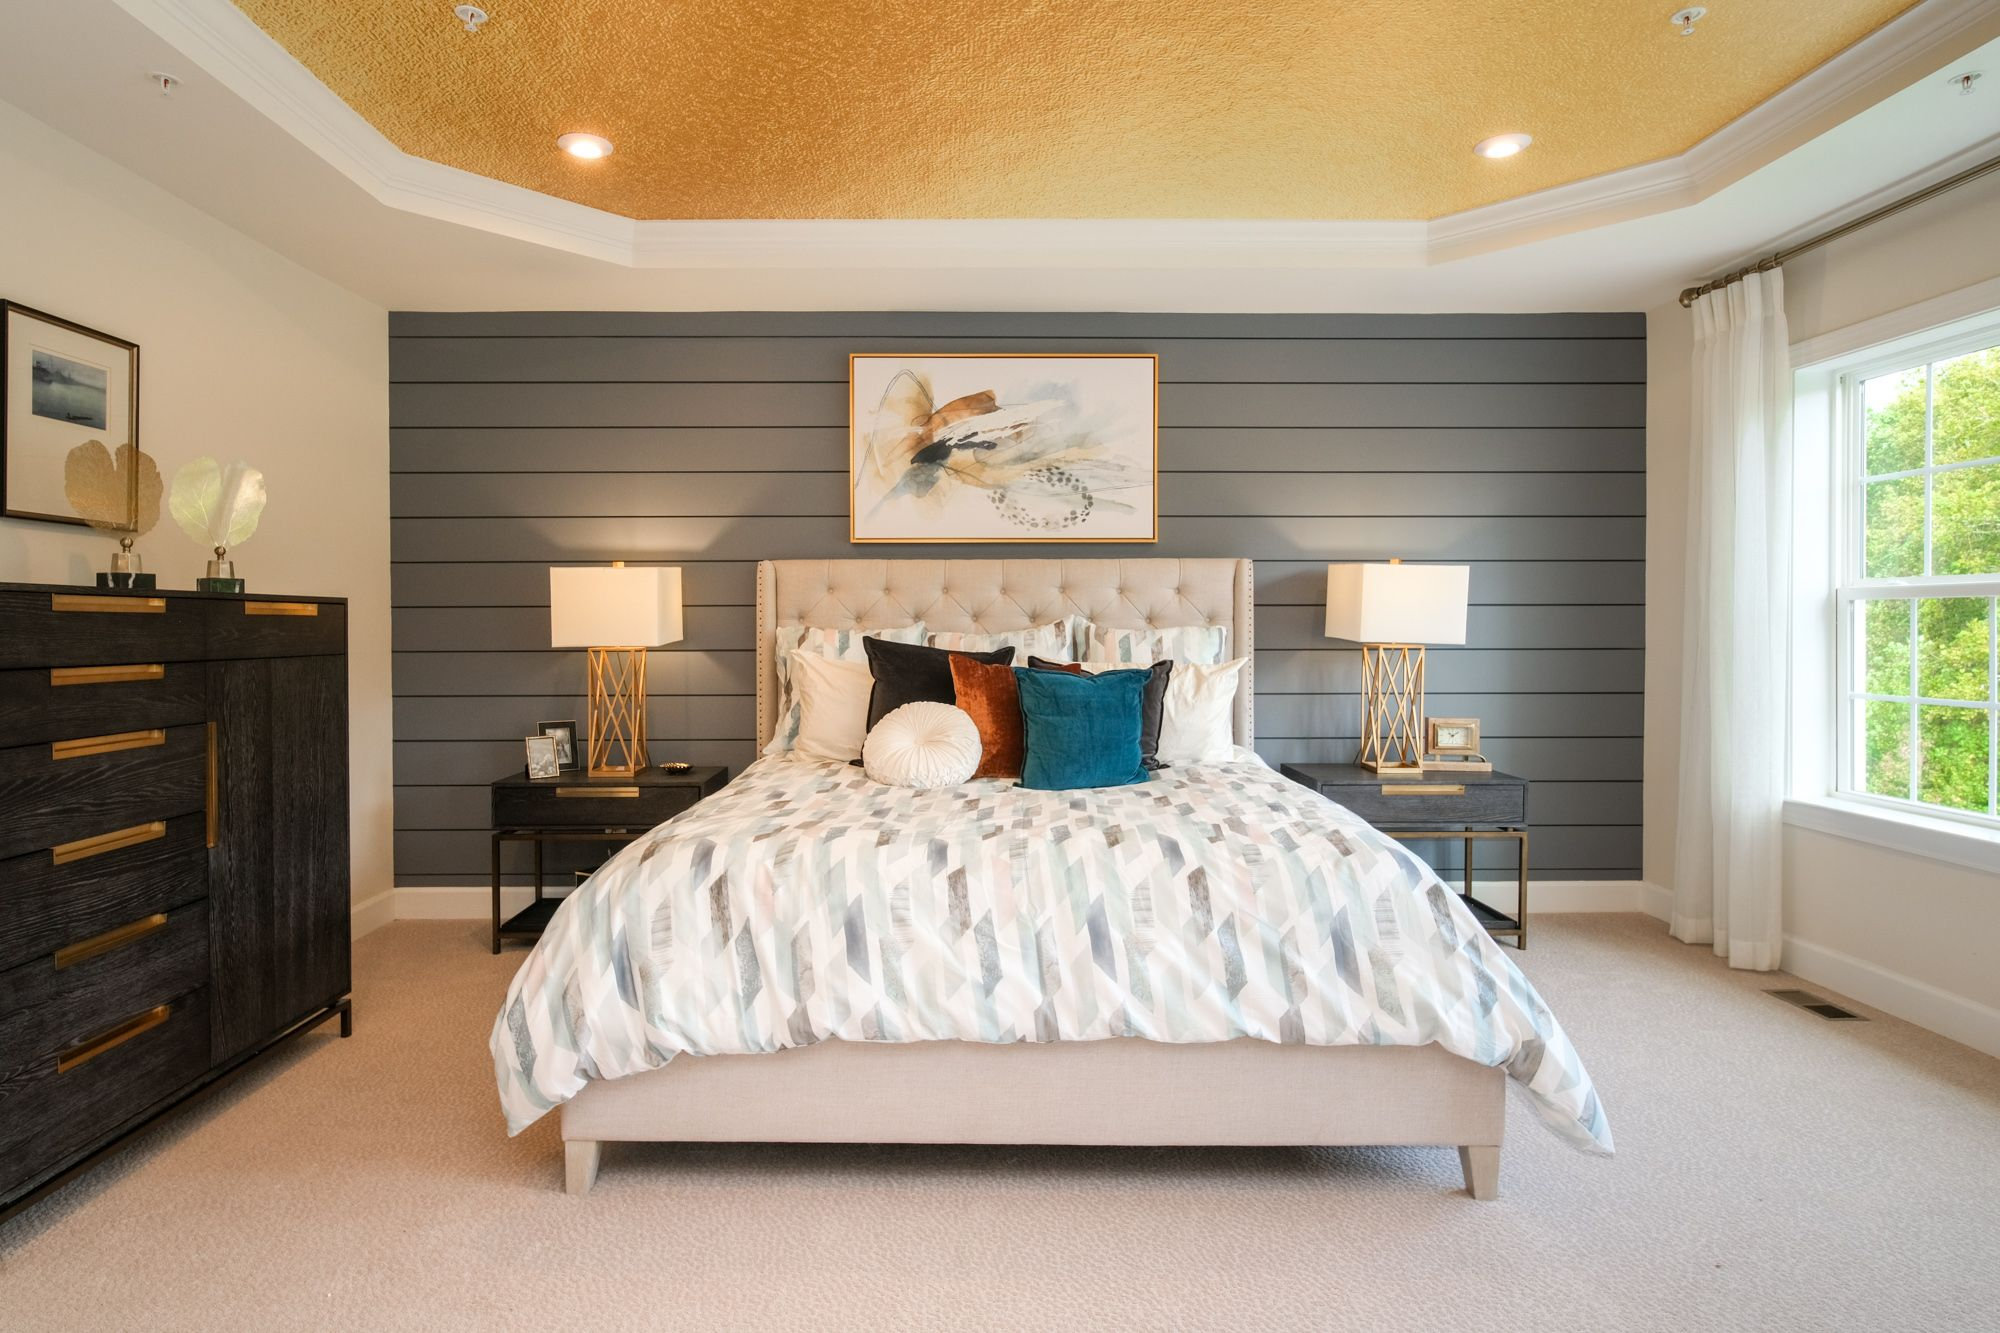 Bedroom featured in the Chatham By Stanley Martin Homes in Washington, MD